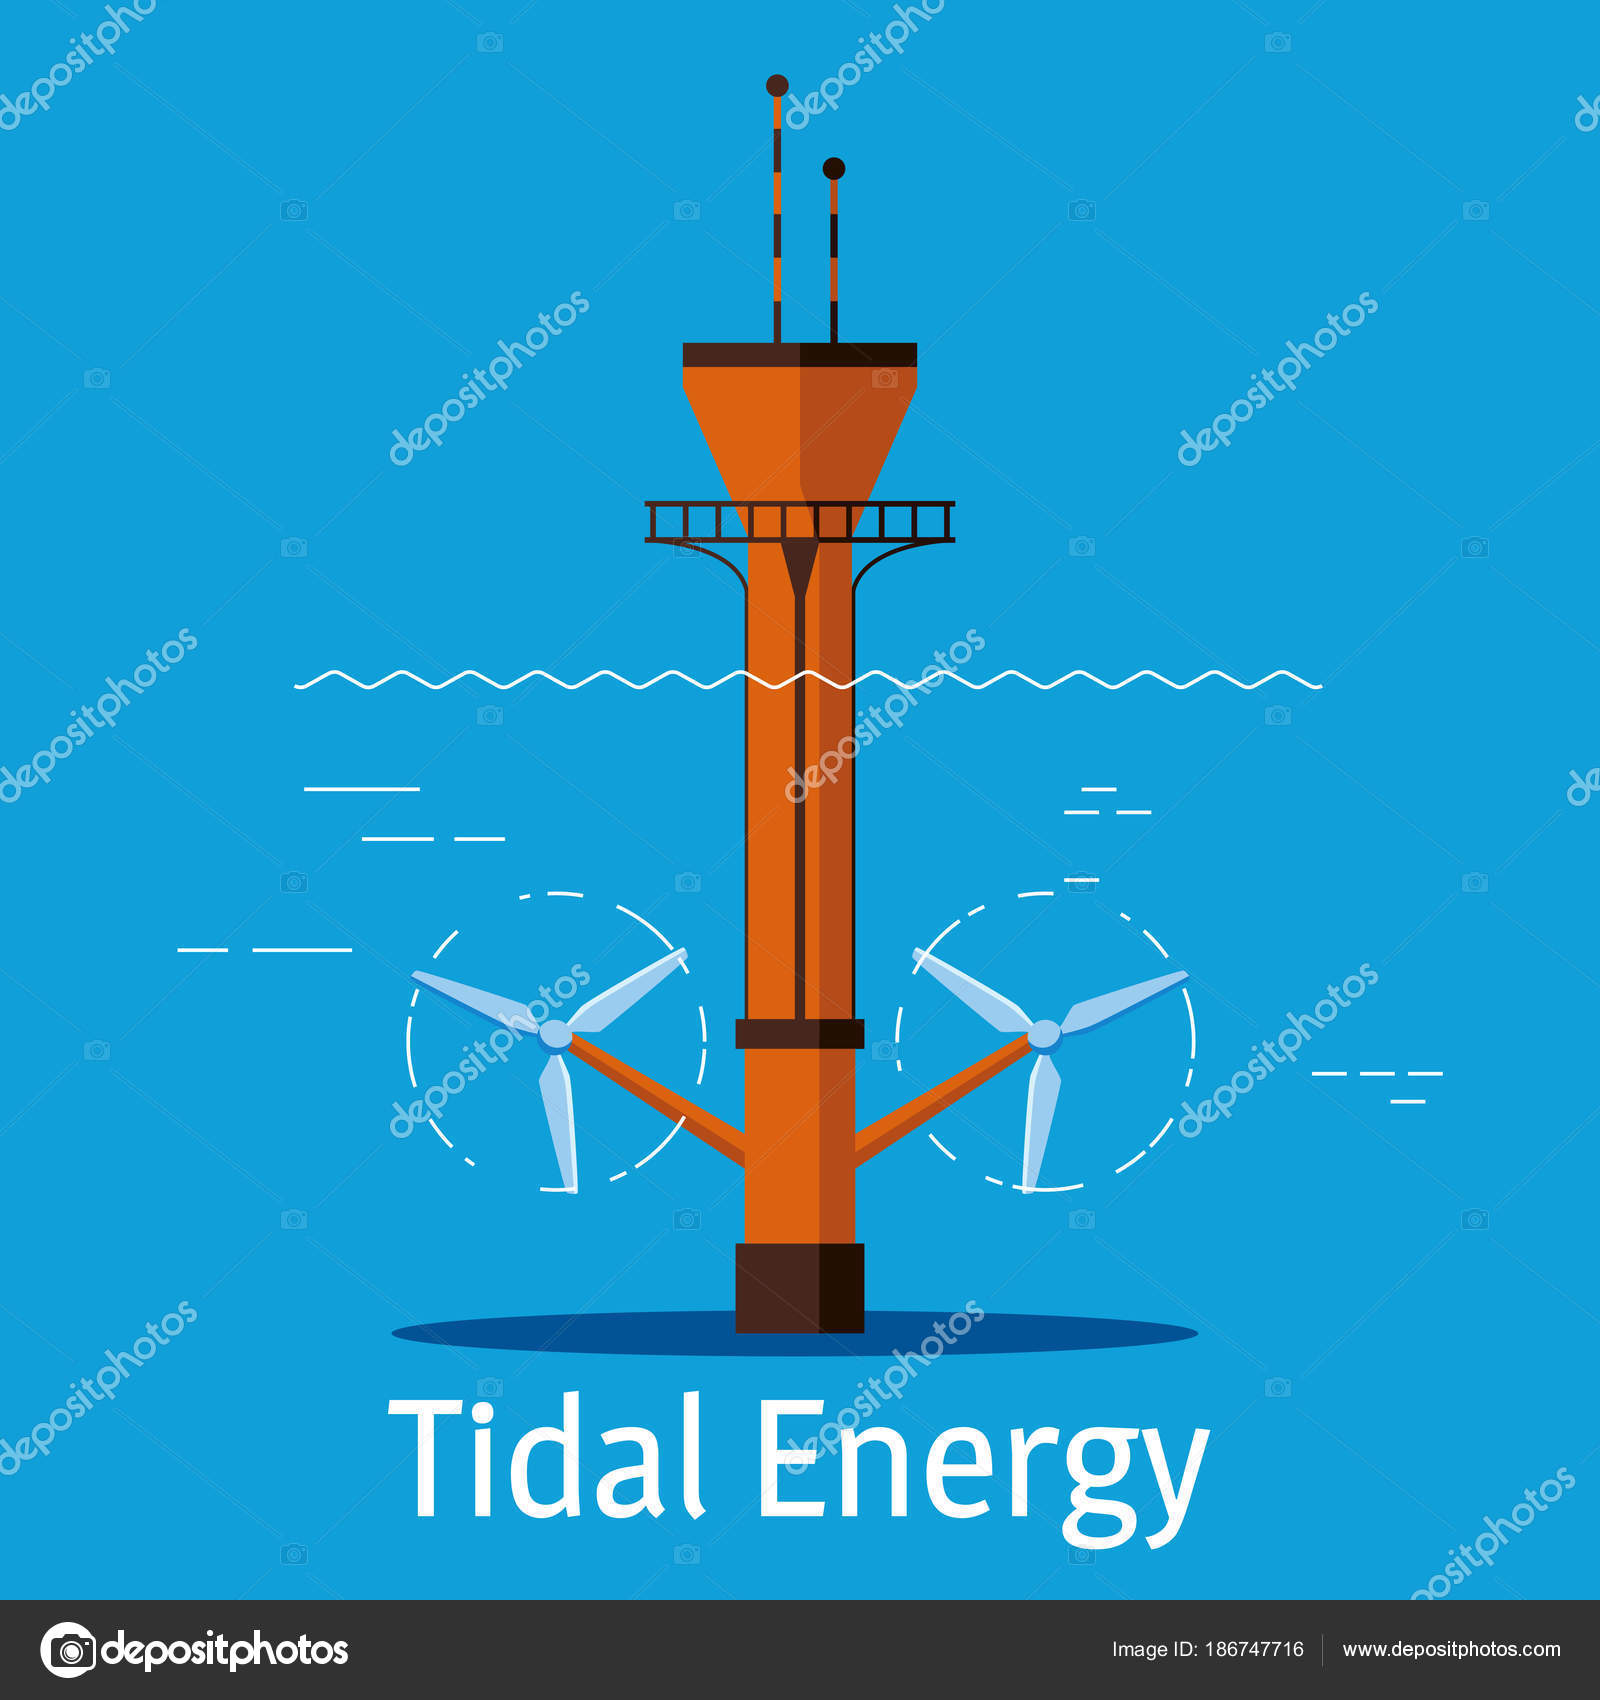 Tidal power station on a blue background. Tidal energy sources concept.  Vector illustration.